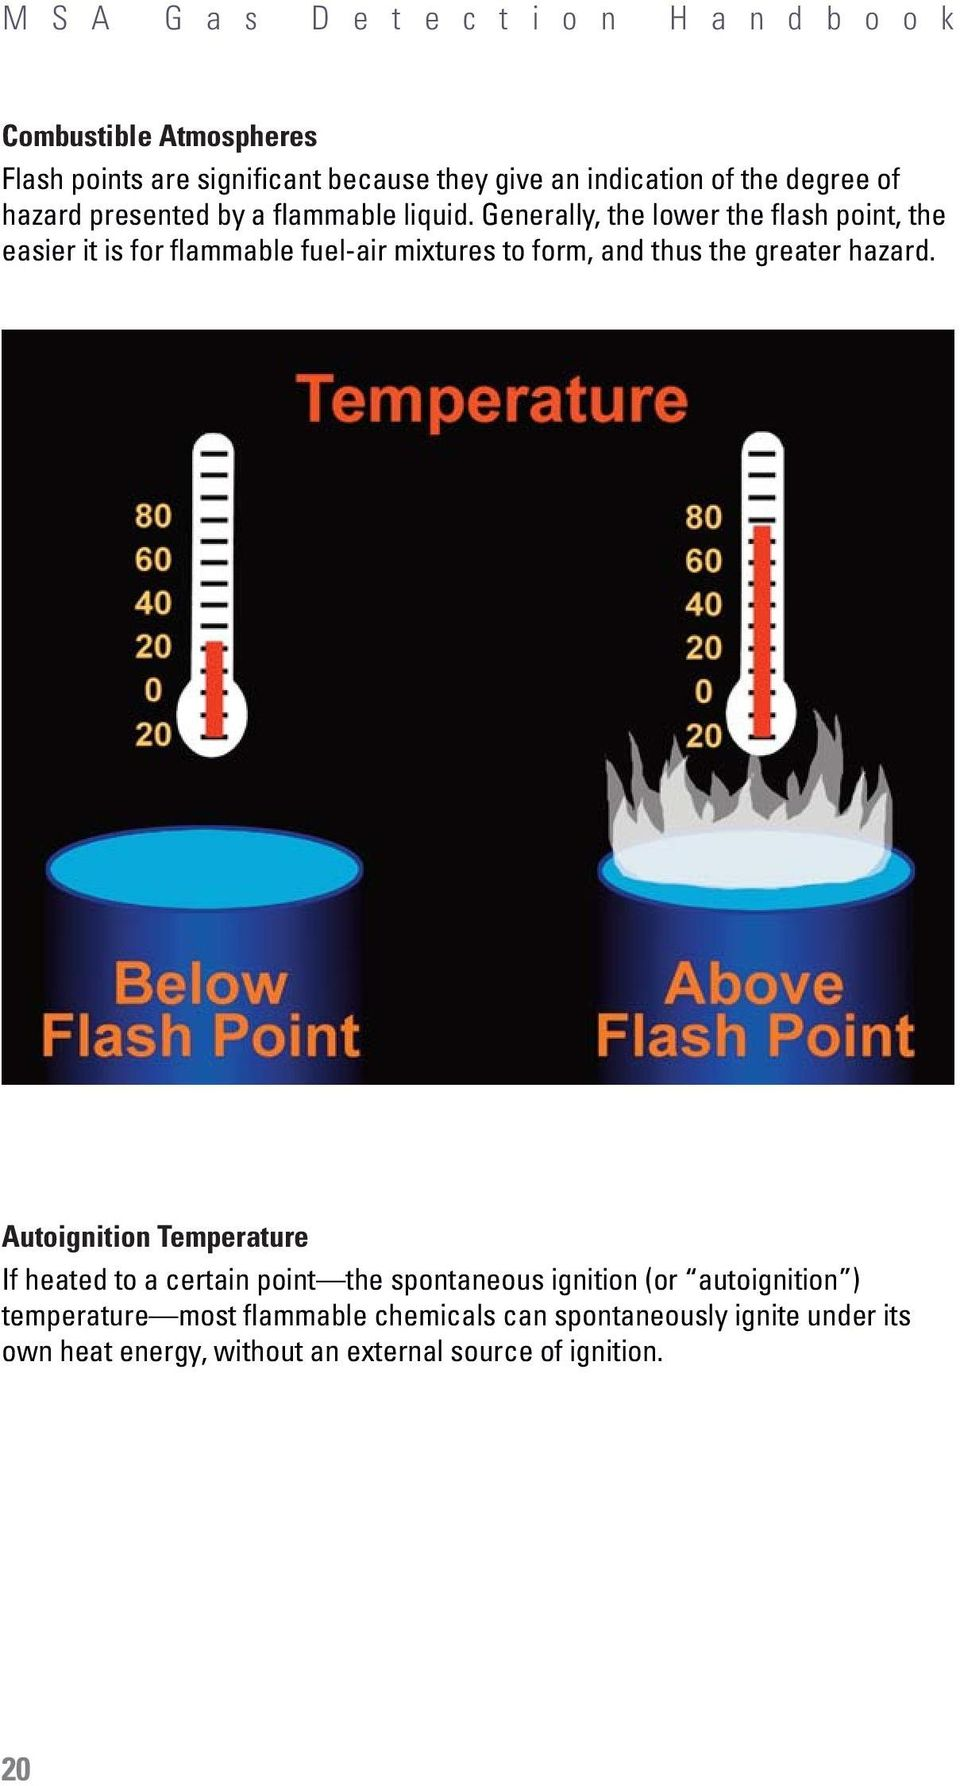 Generally, the lower the flash point, the easier it is for flammable fuel-air mixtures to form, and thus the greater hazard.